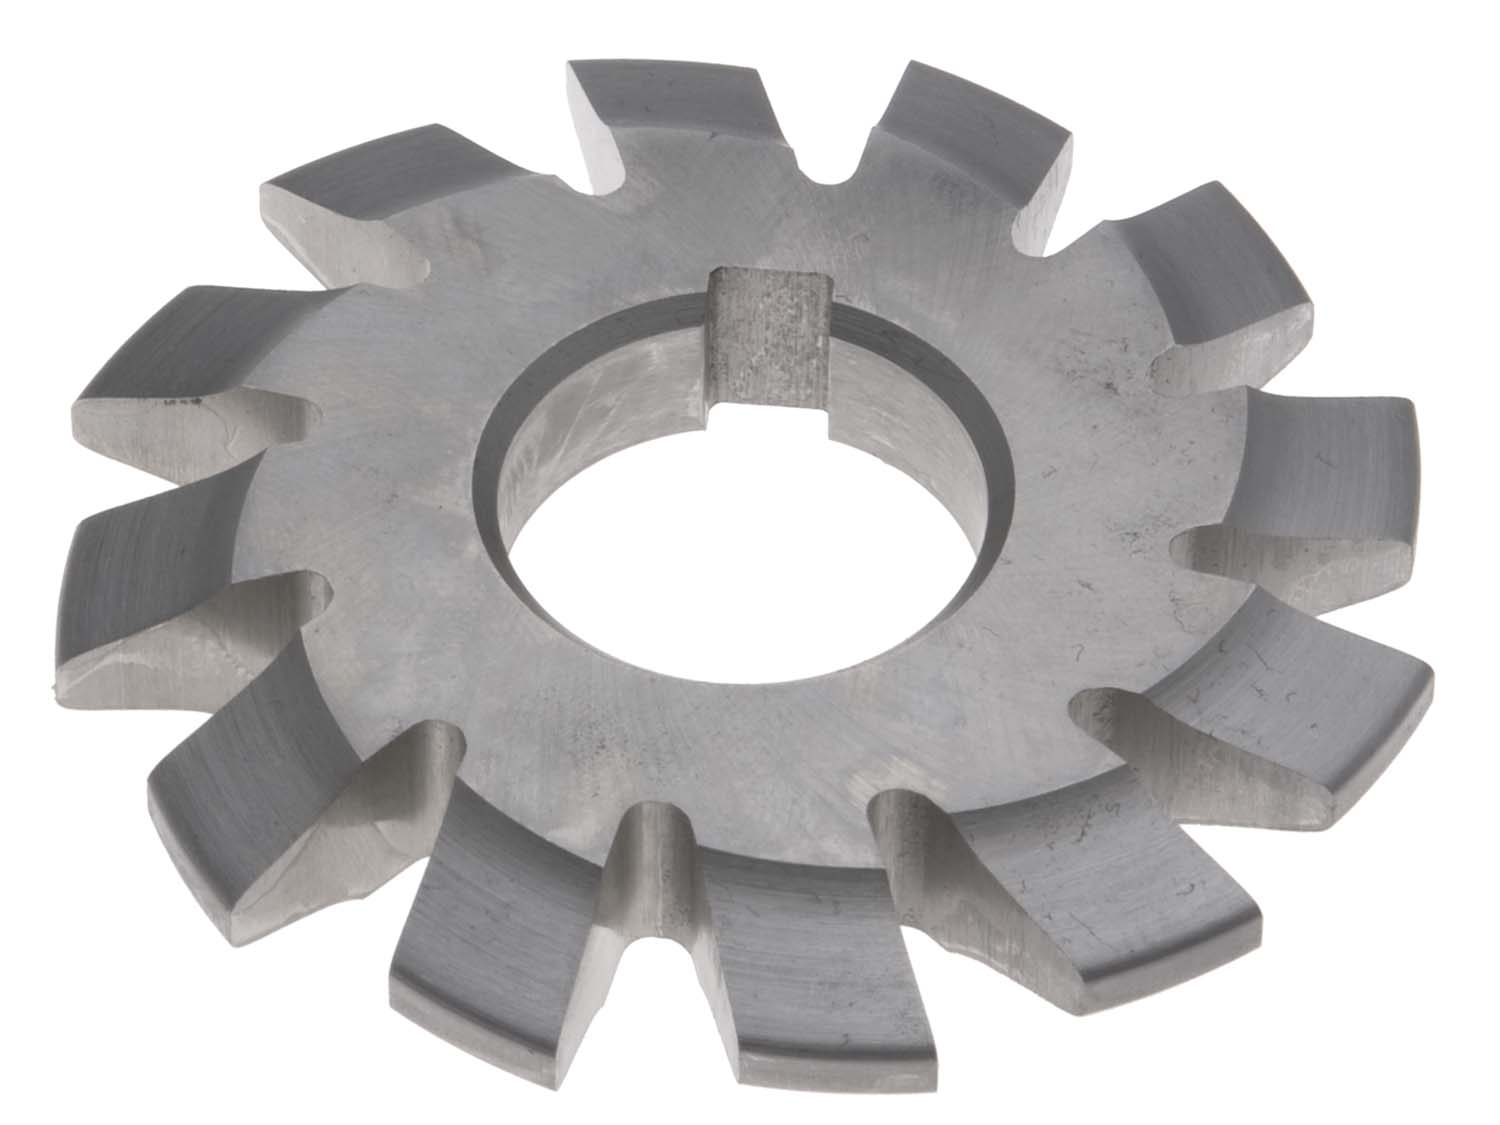 11 Diametral Pitch # 8 Involute Gear Cutter - 7/8 ID - 14-1/2 Degree Pressure Angle